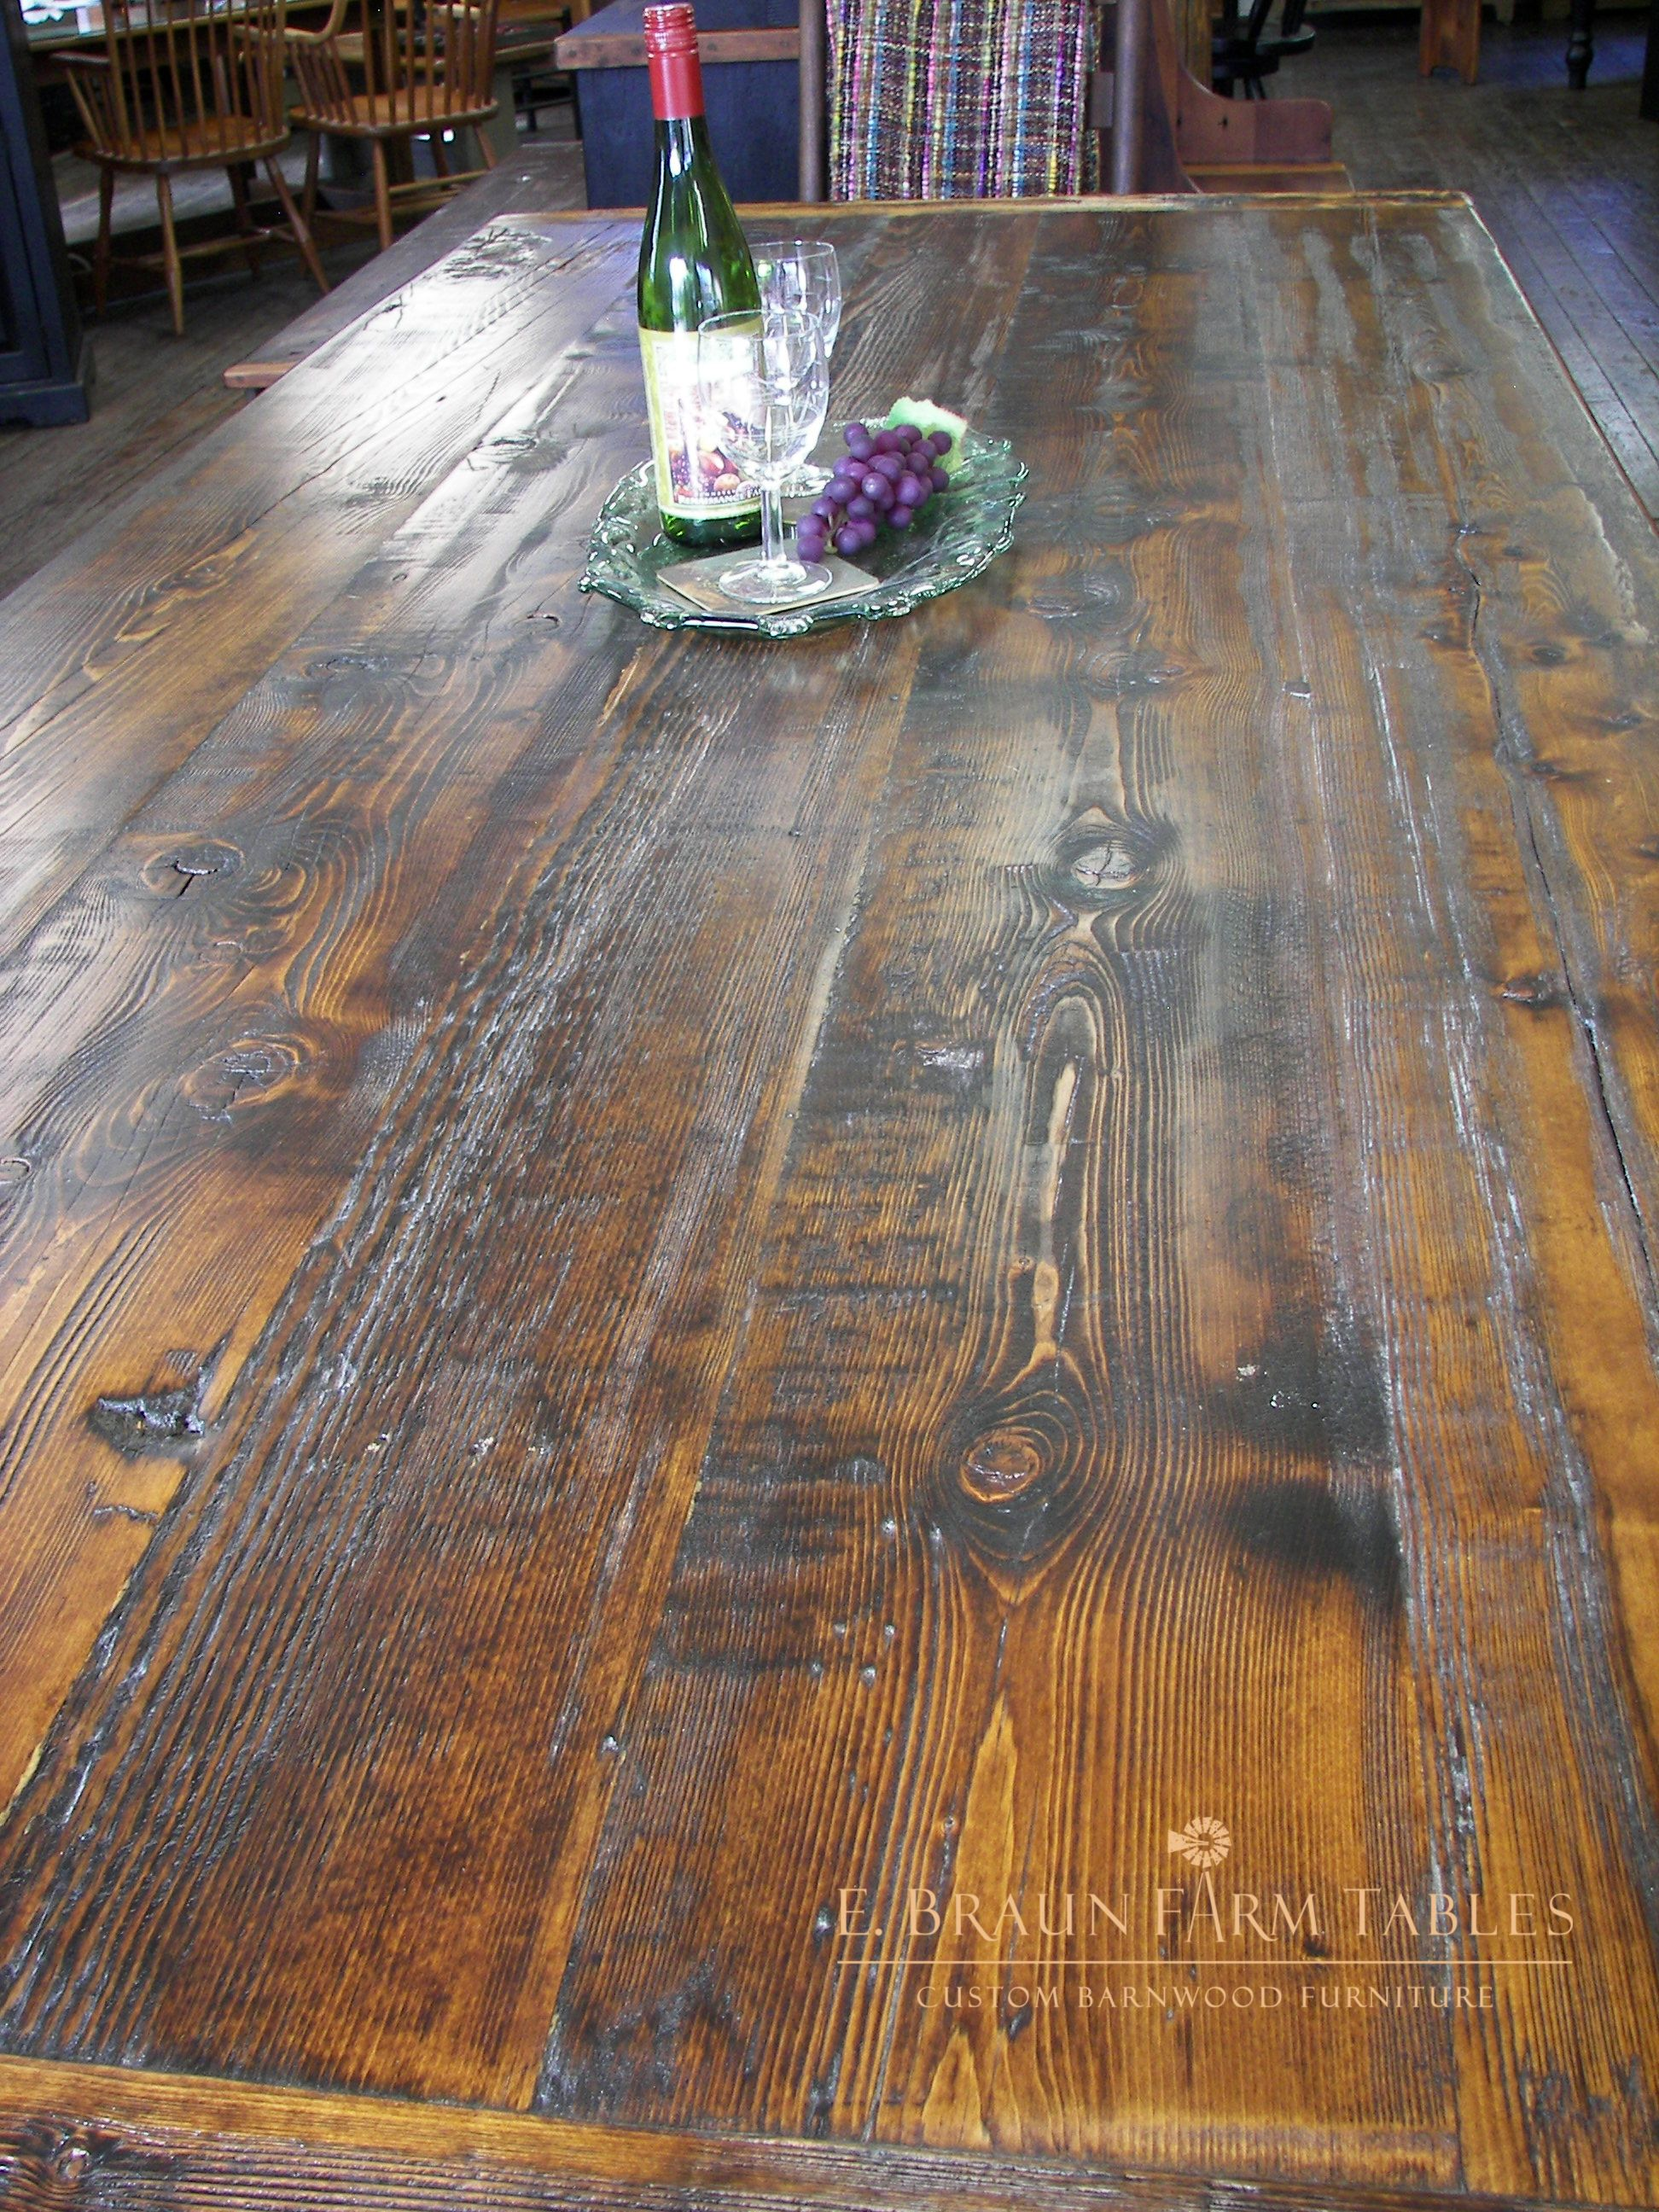 Medium Character Lots Of Texture And Wear On The Boards 8 Long Table Top This Custom Farm T Farm Table Reclaimed Heart Pine Table Rustic Dining Room Table